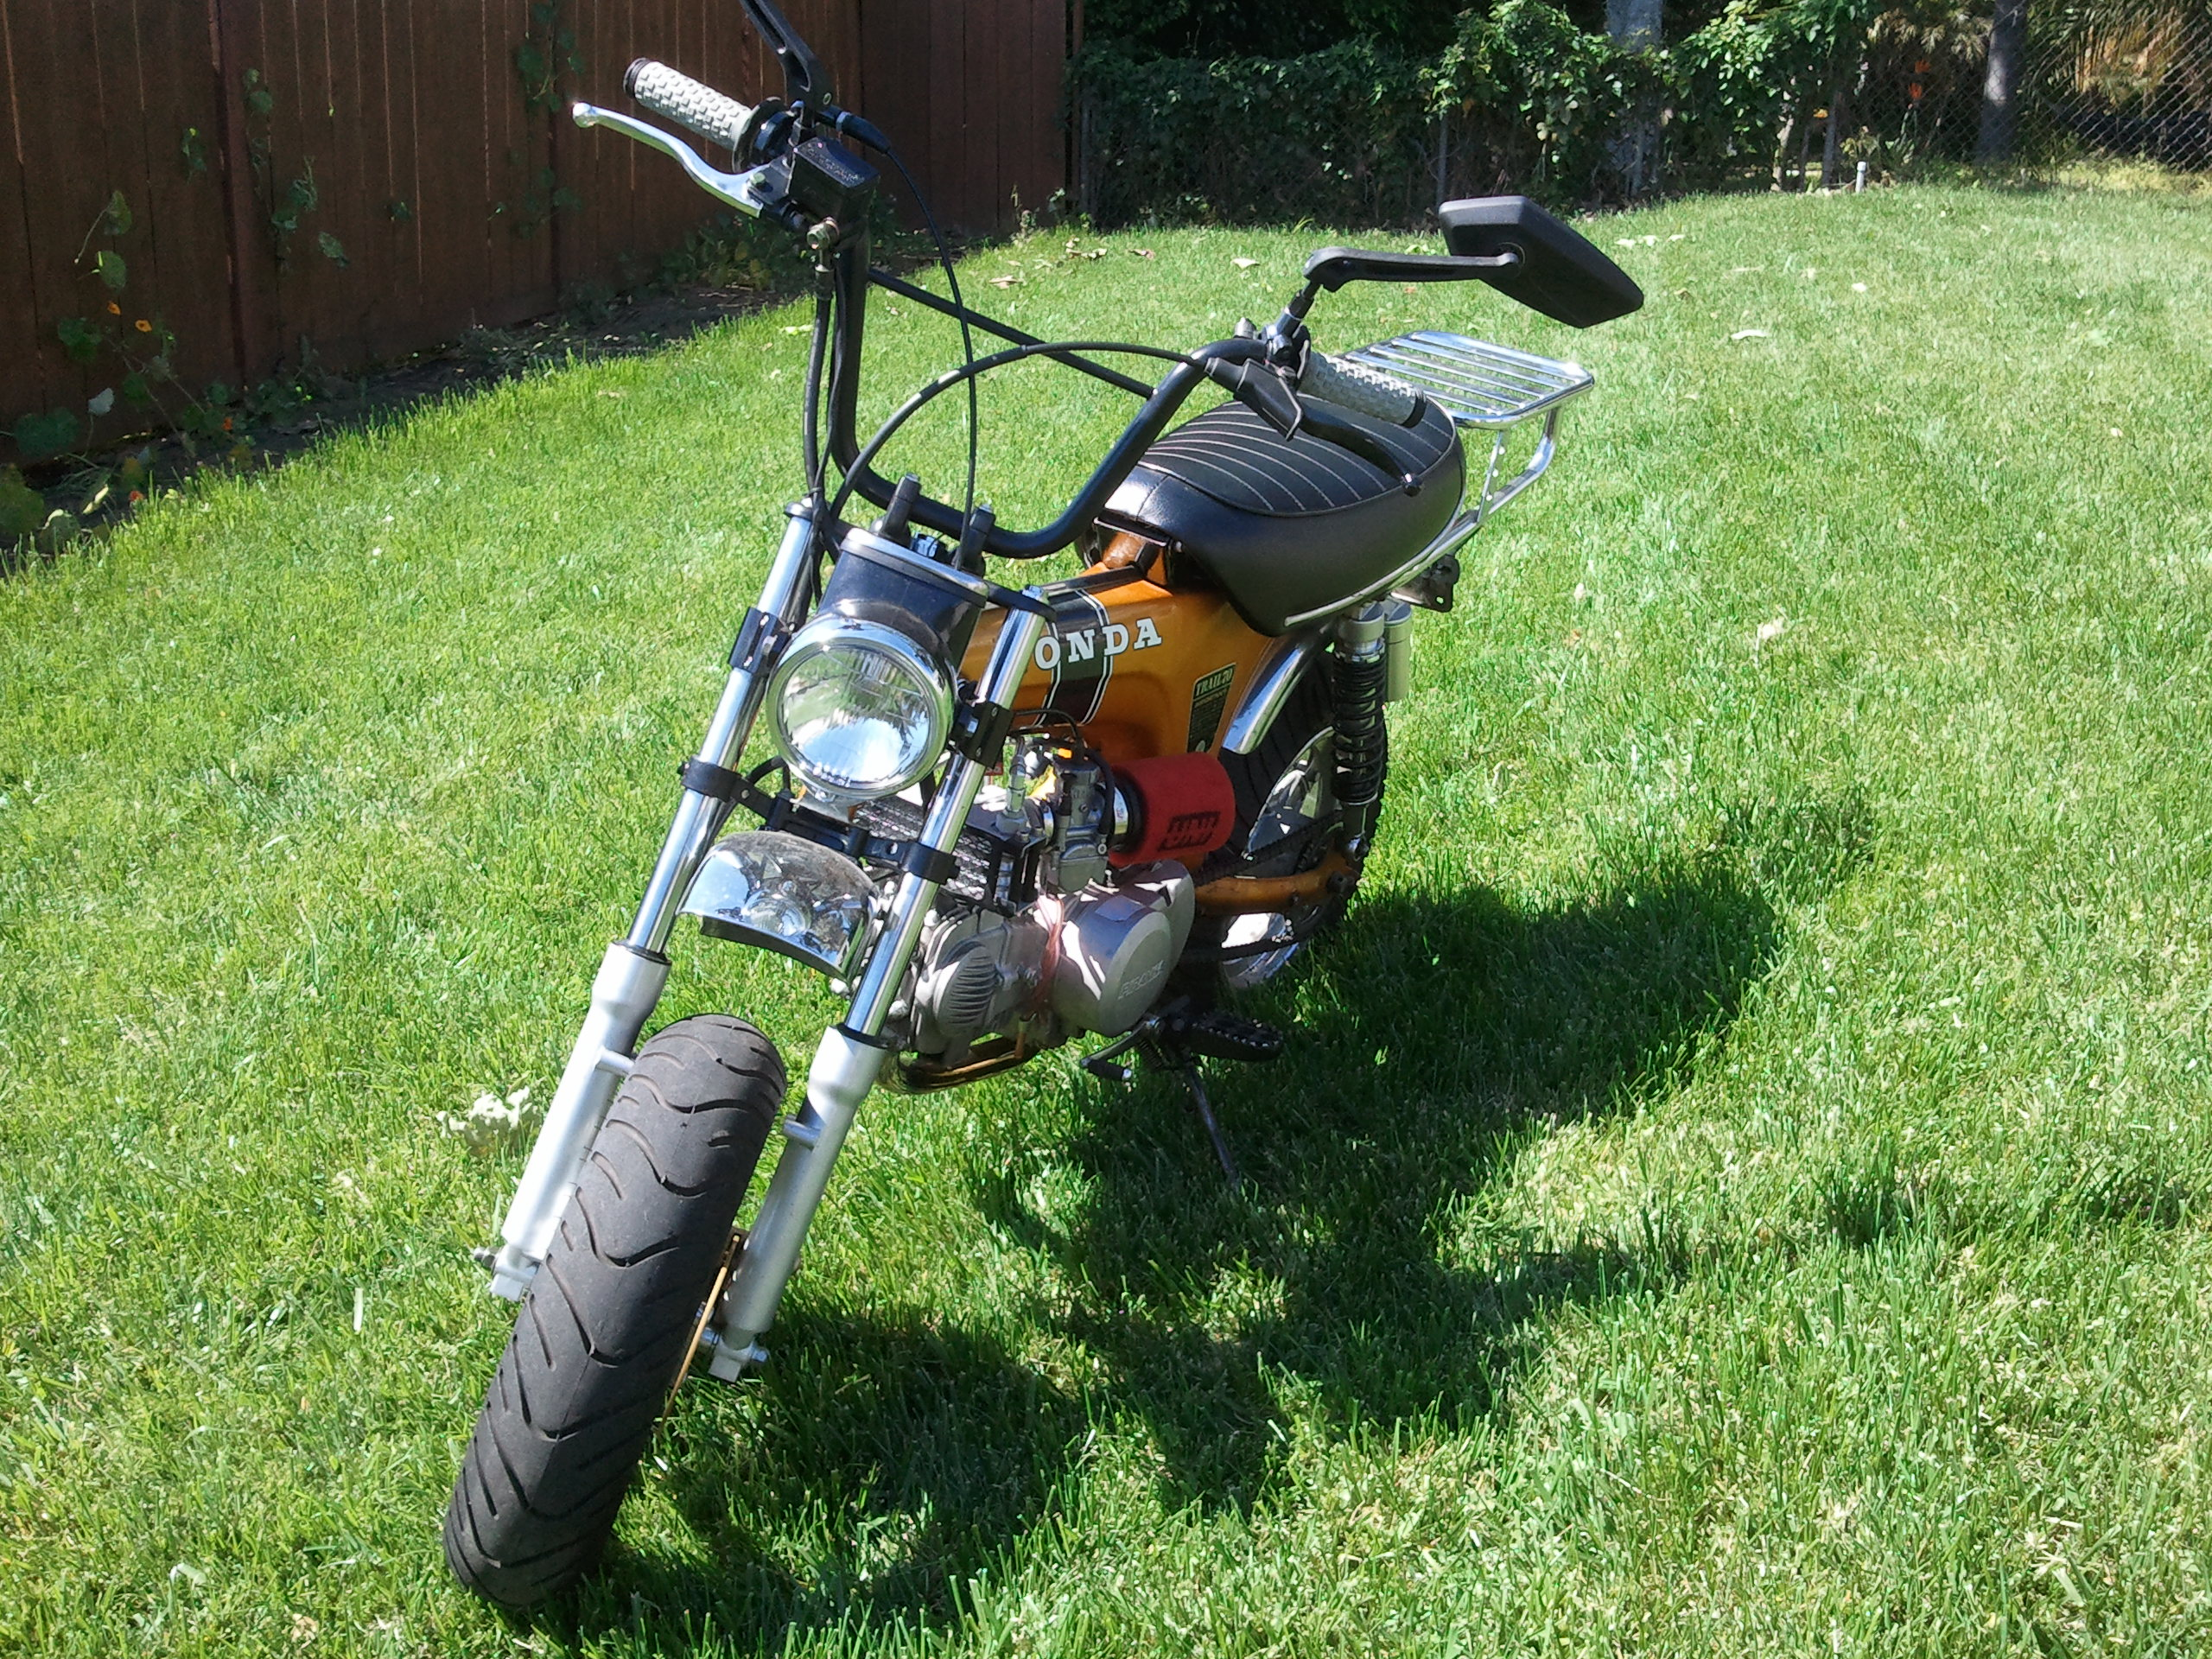 1970 Candy Gold Honda Ct70 Full Mod 150cc Yx 12 Wheels Pitster X4m Wiring Pit Bikes Thumpertalk Click Image For Larger Version Name Img 20120310 114156 Views 225 Size